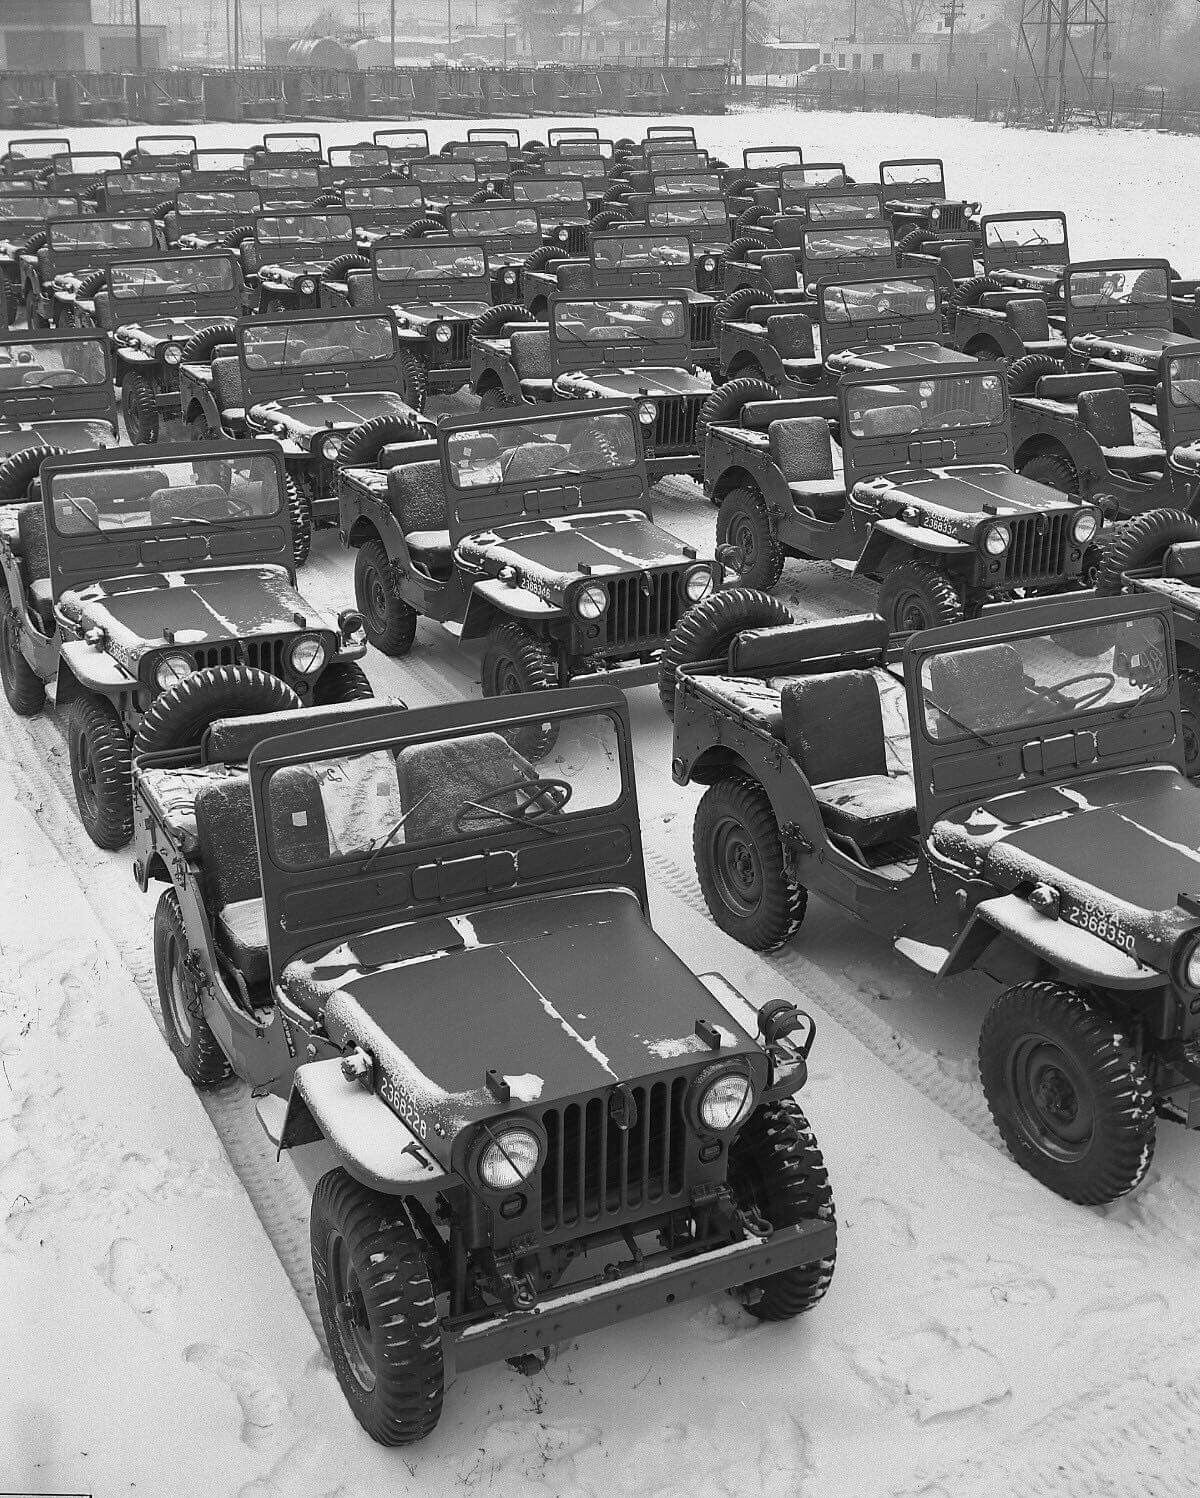 Brand New Off The Line Ww2 Jeeps Ready To Take Part In The War Jeep Jeep Truck Jeep Military Jeep